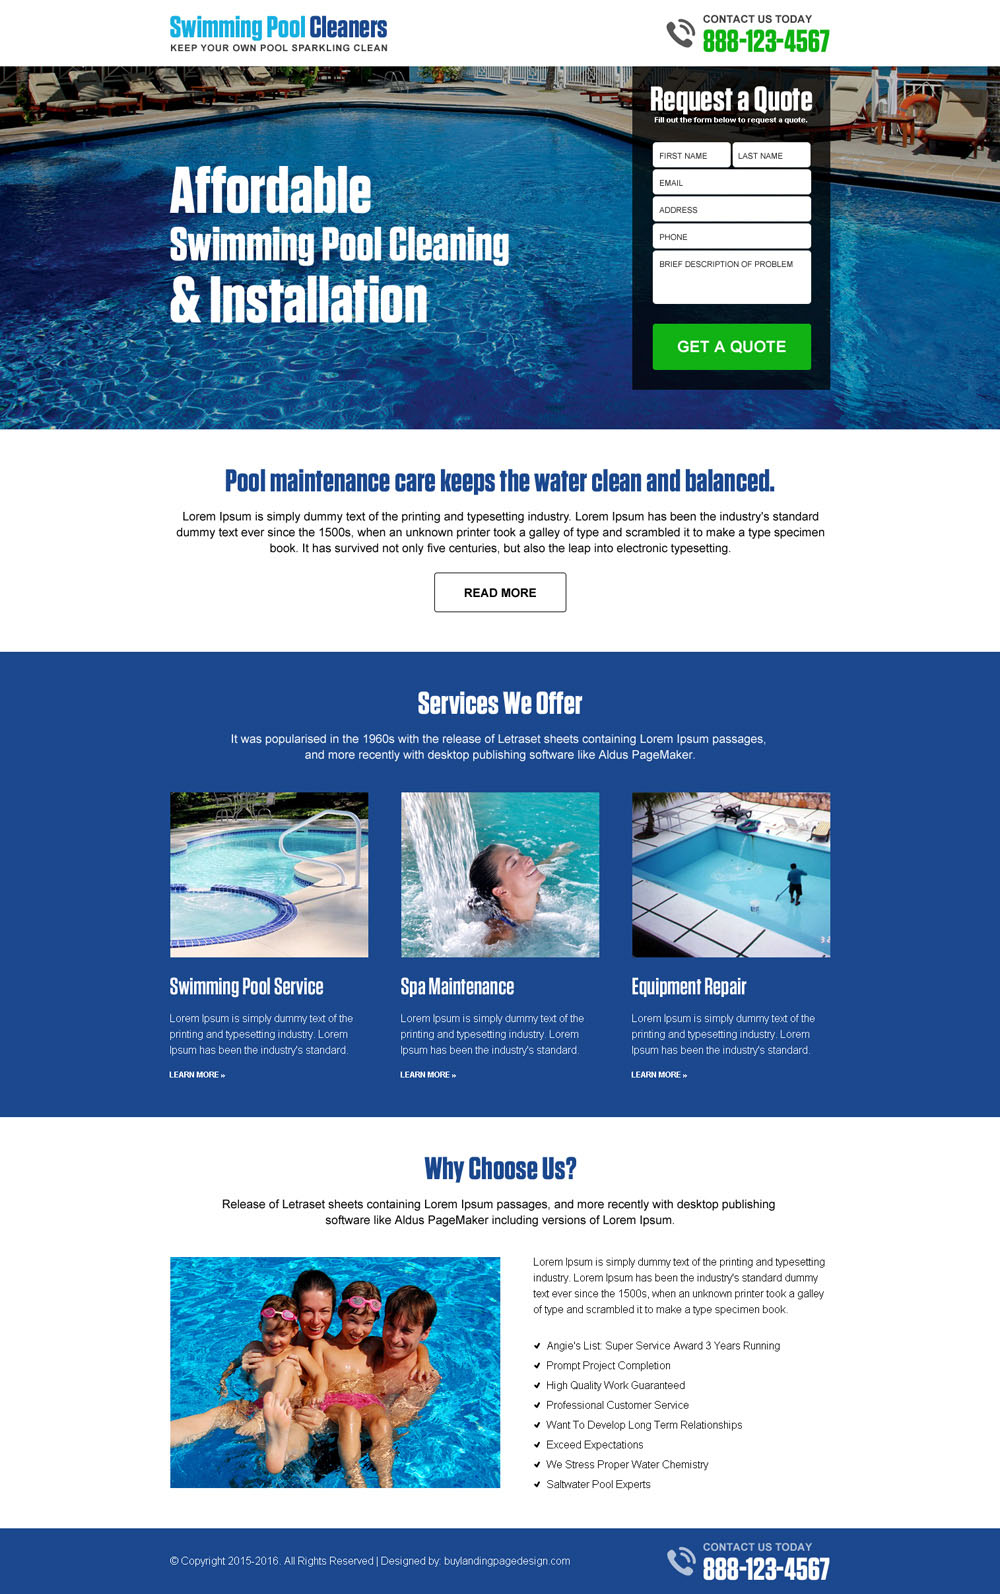 swimming-pool-cleaning-installation-service-lead-capture-landing-page-design-003